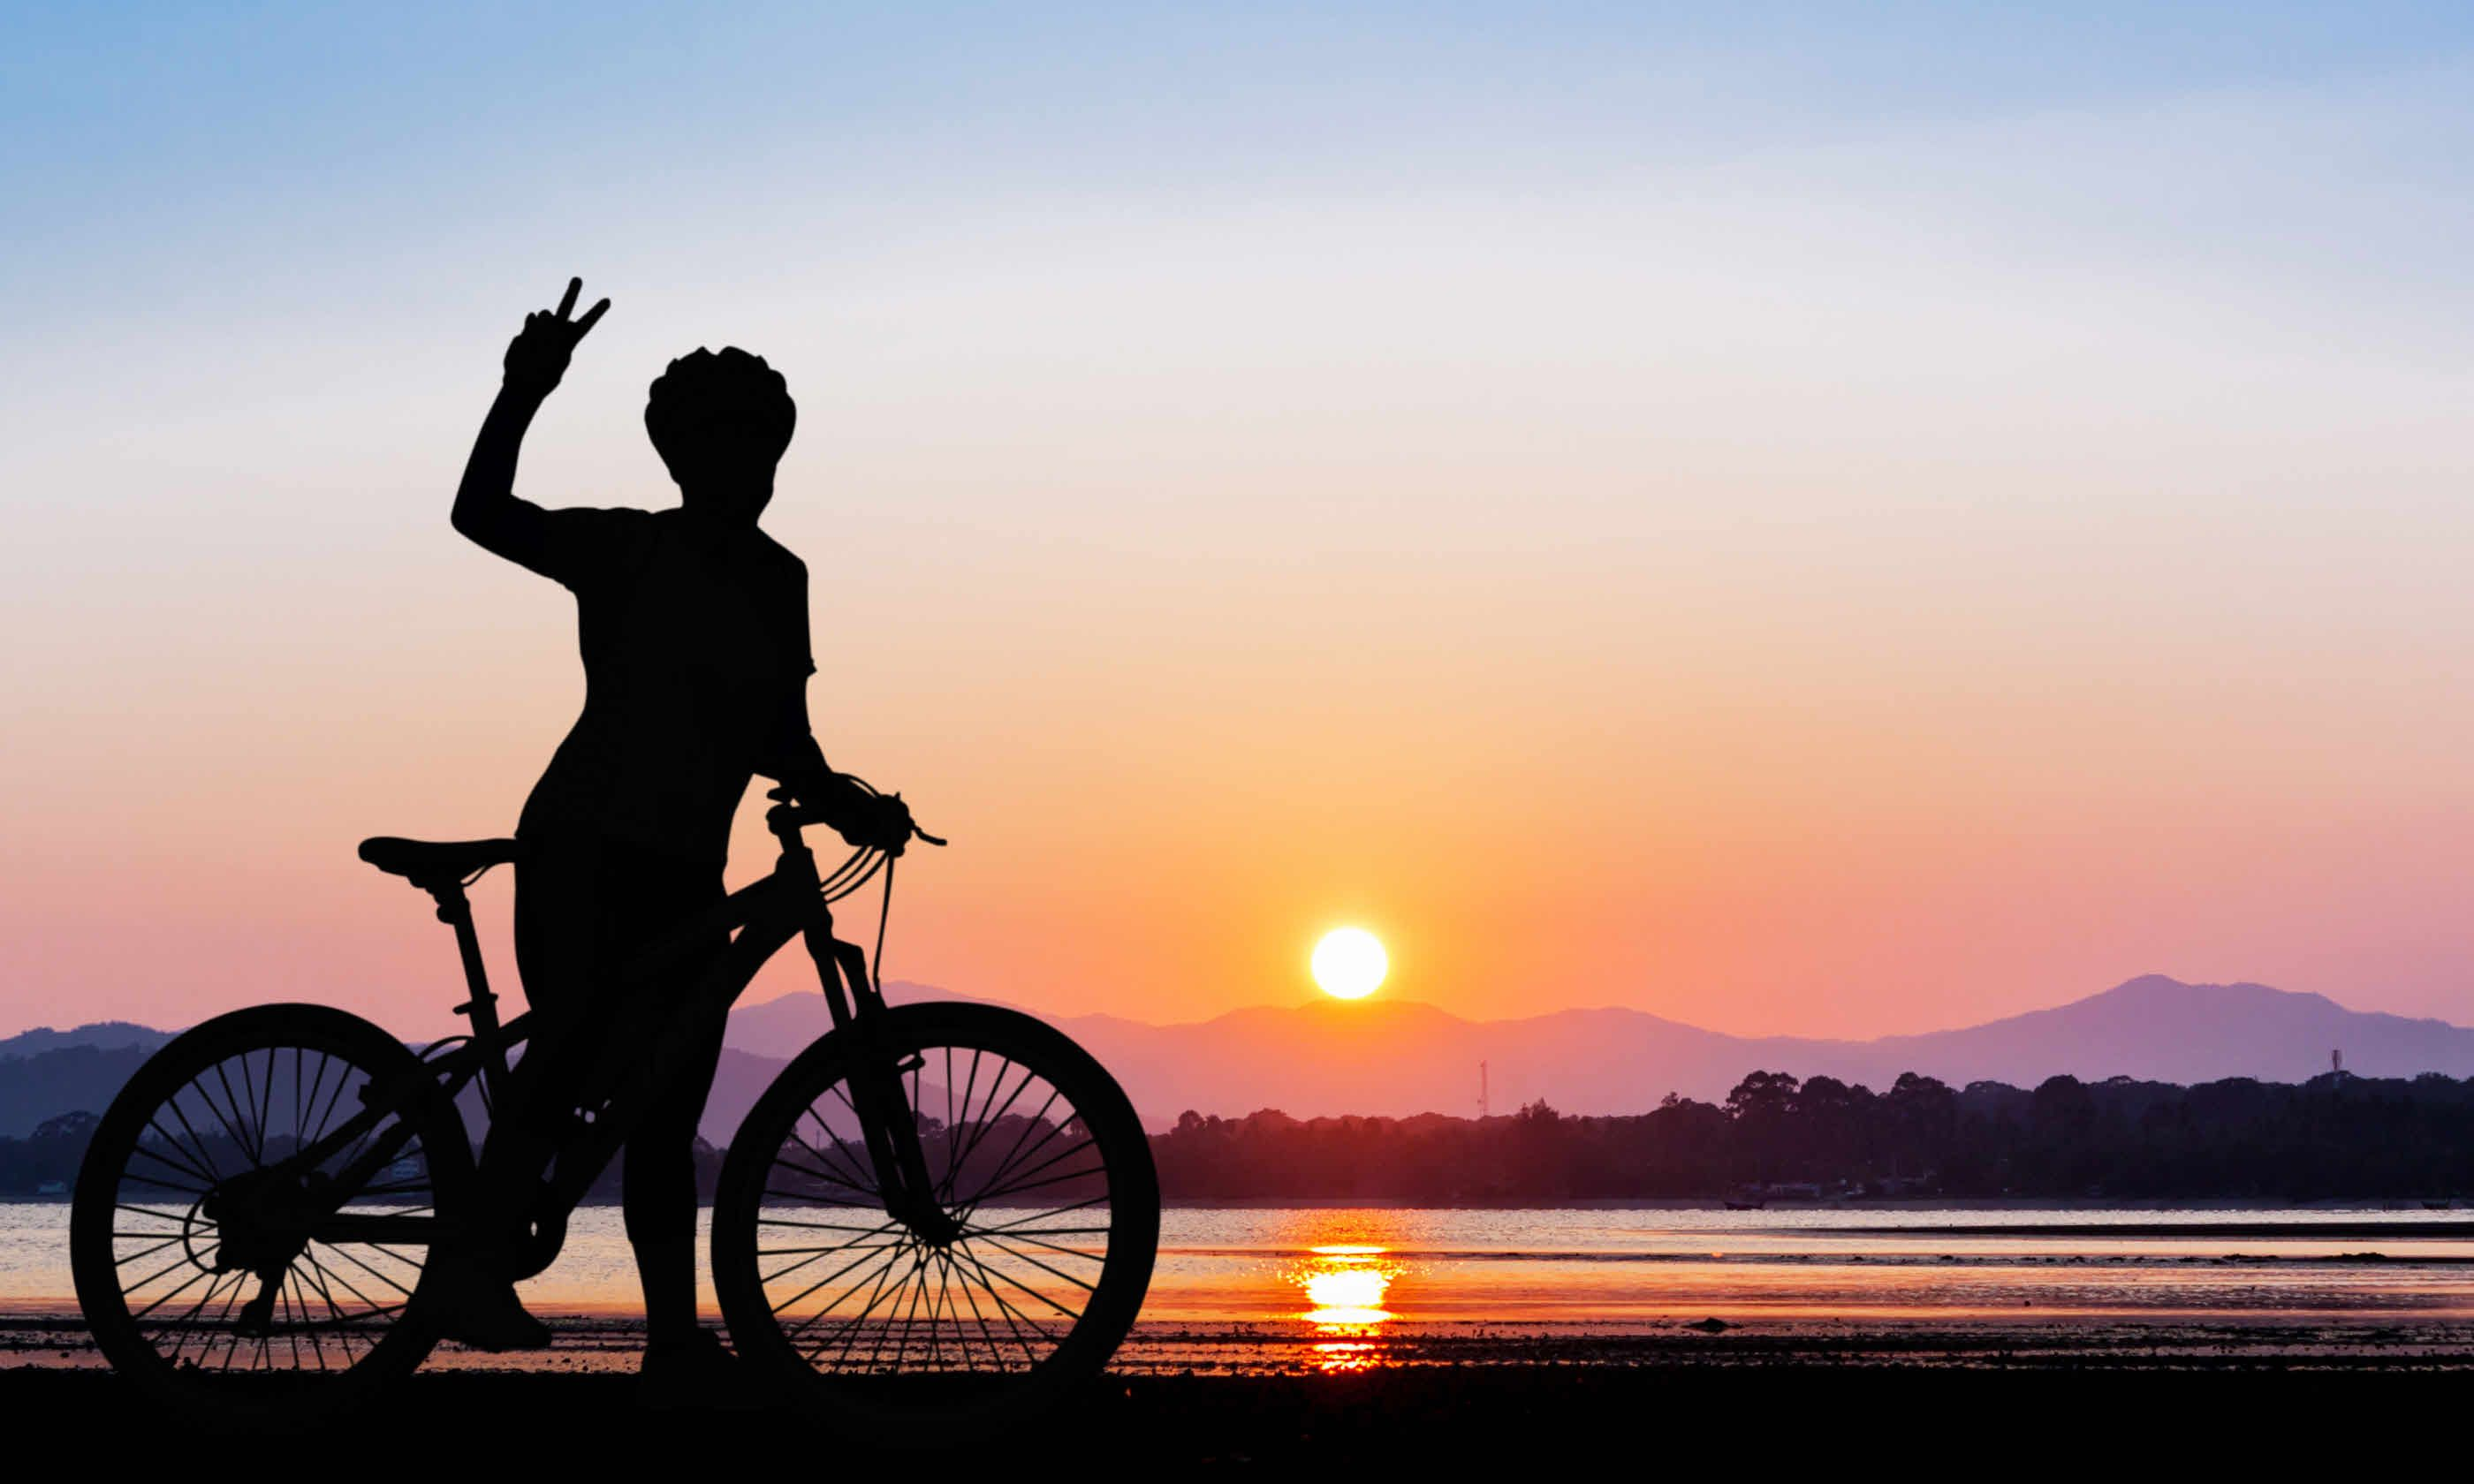 Cycling at sunset, Thailand (Shutterstock)